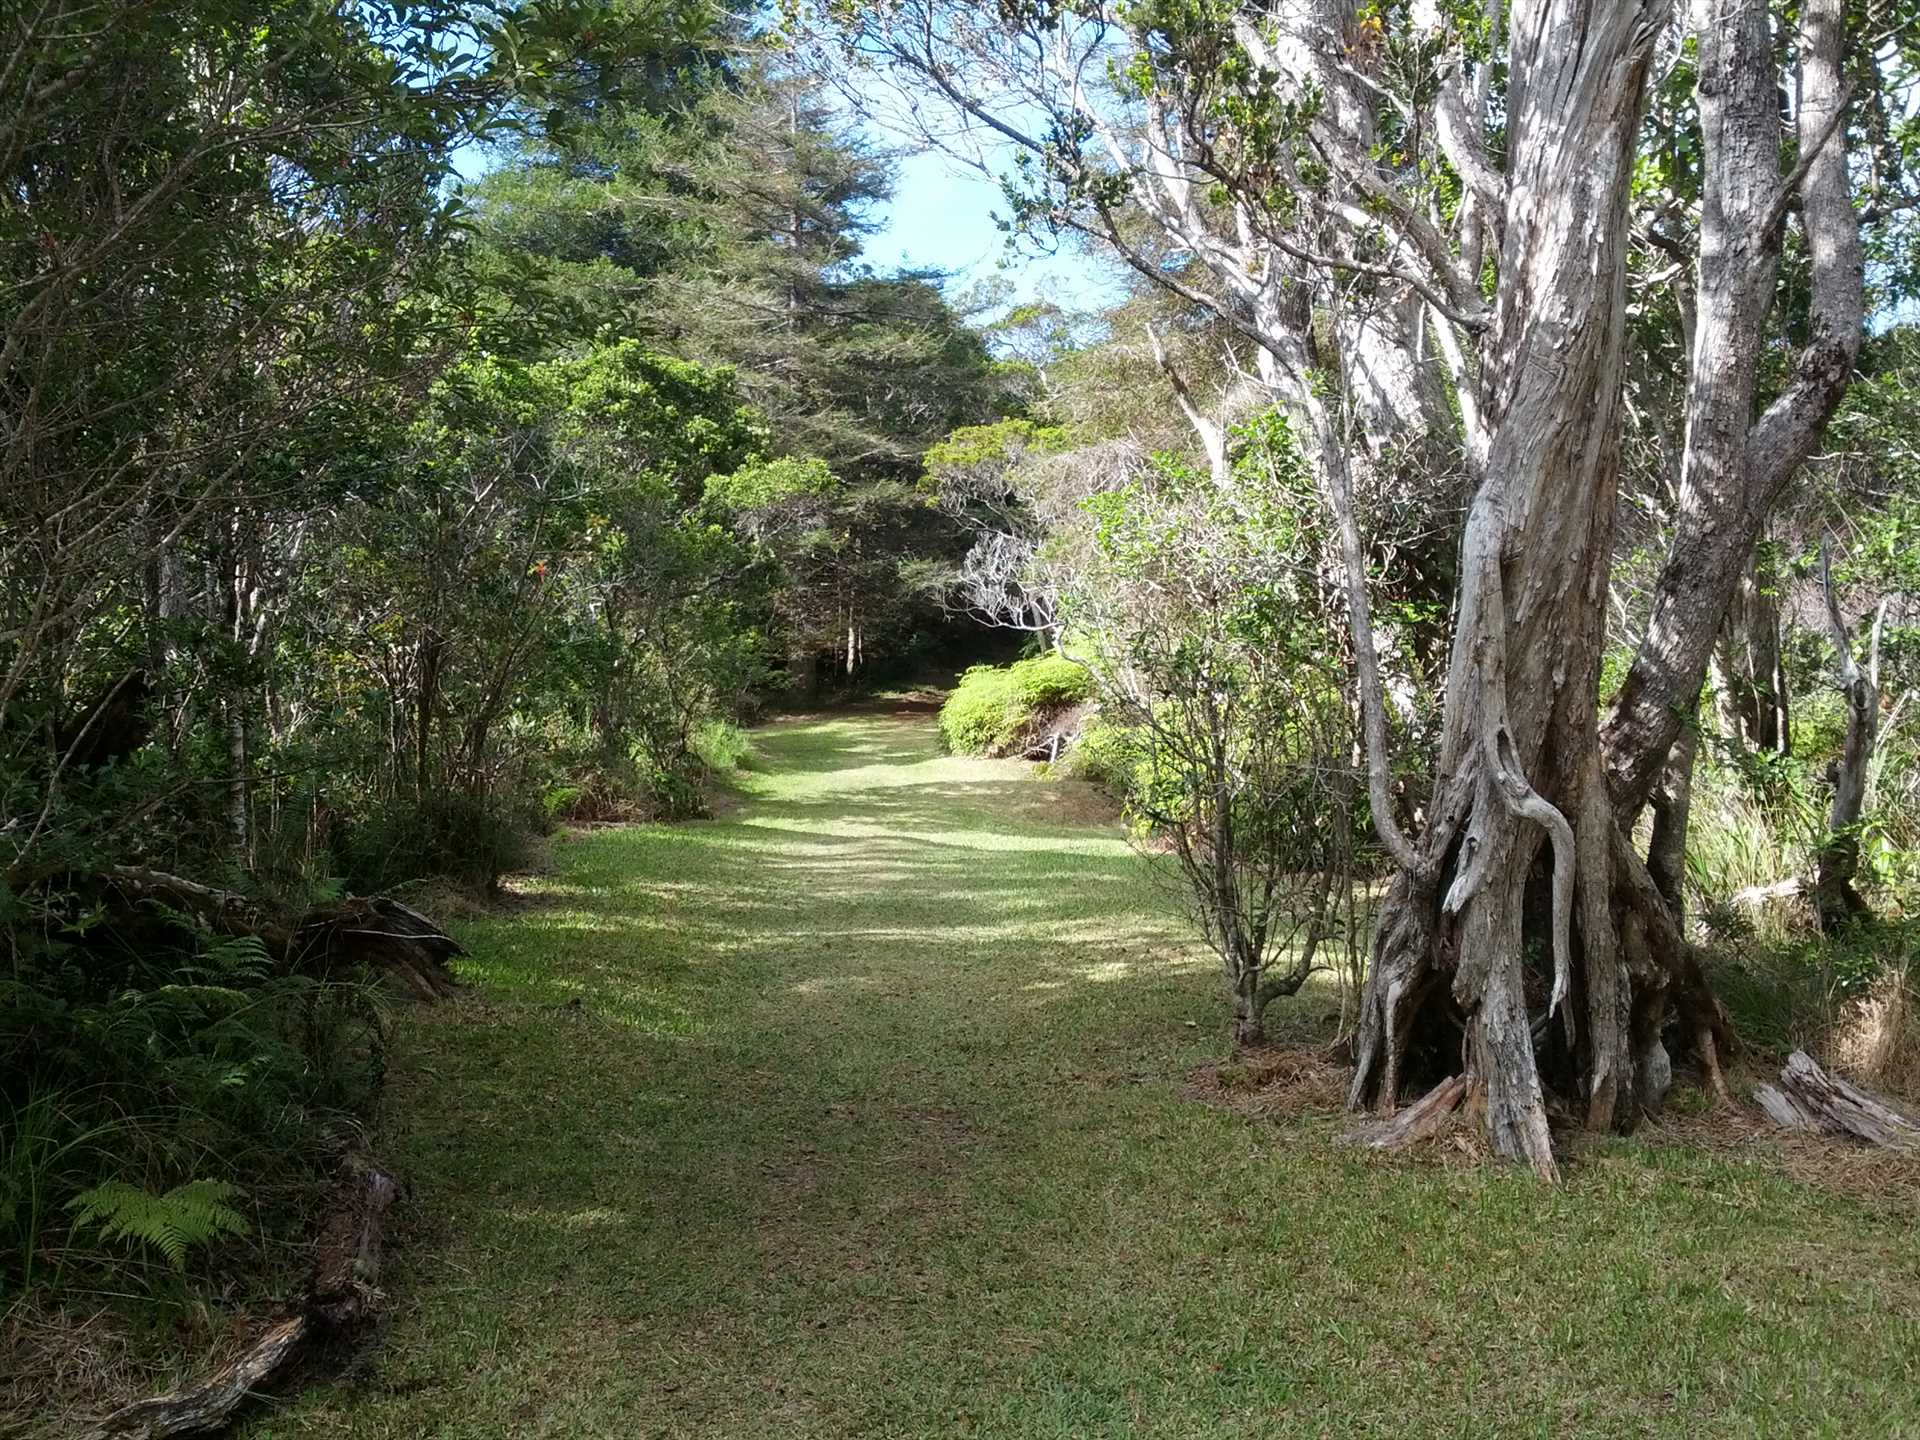 Hiking trails abound in Kokee State park near Waimea